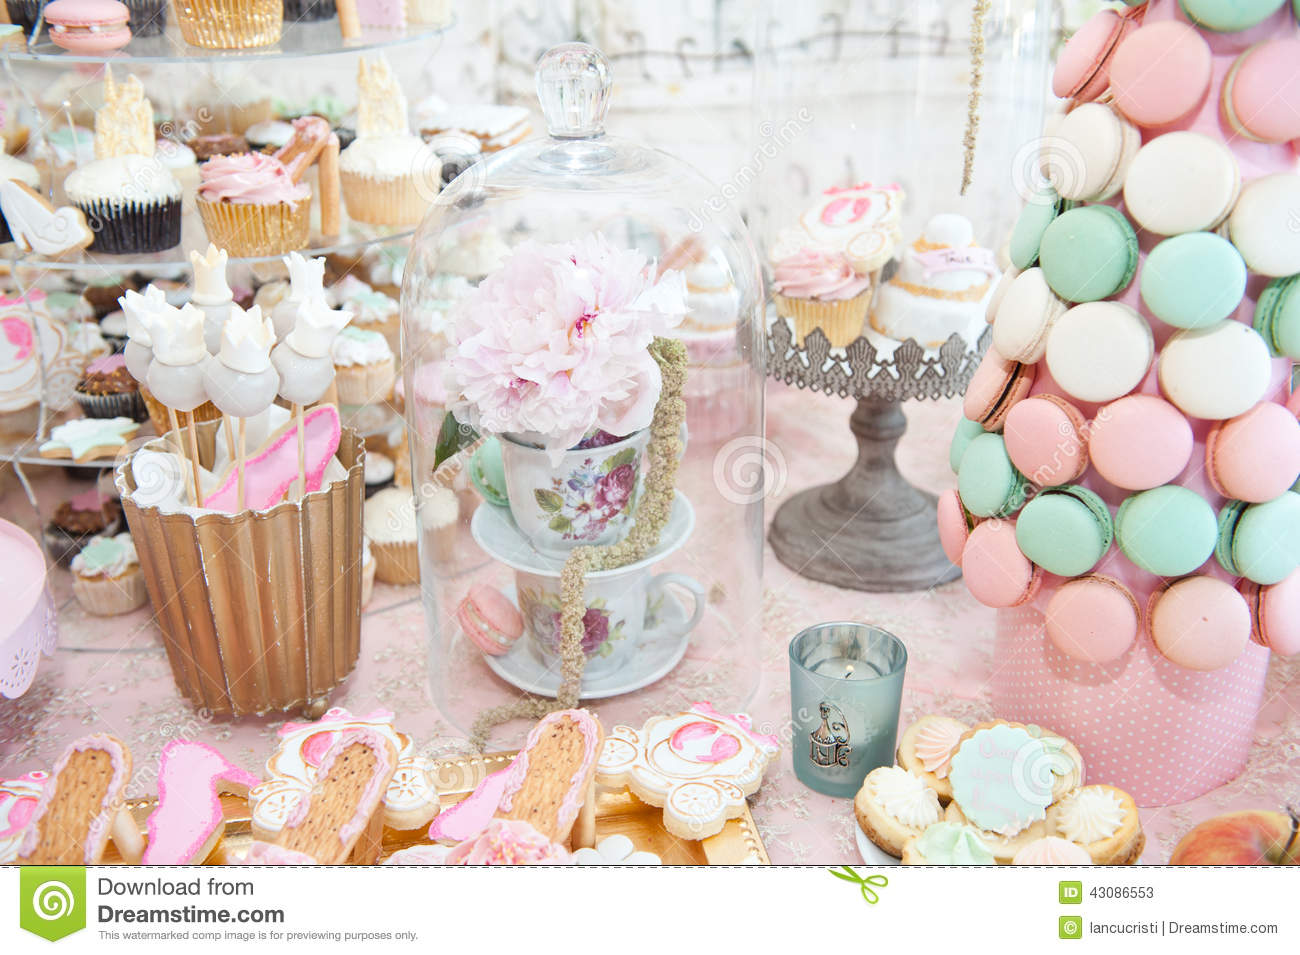 Decoration De Table Couleur Pastel Wedding Decoration With Pastel Colored Cupcakes Meringues